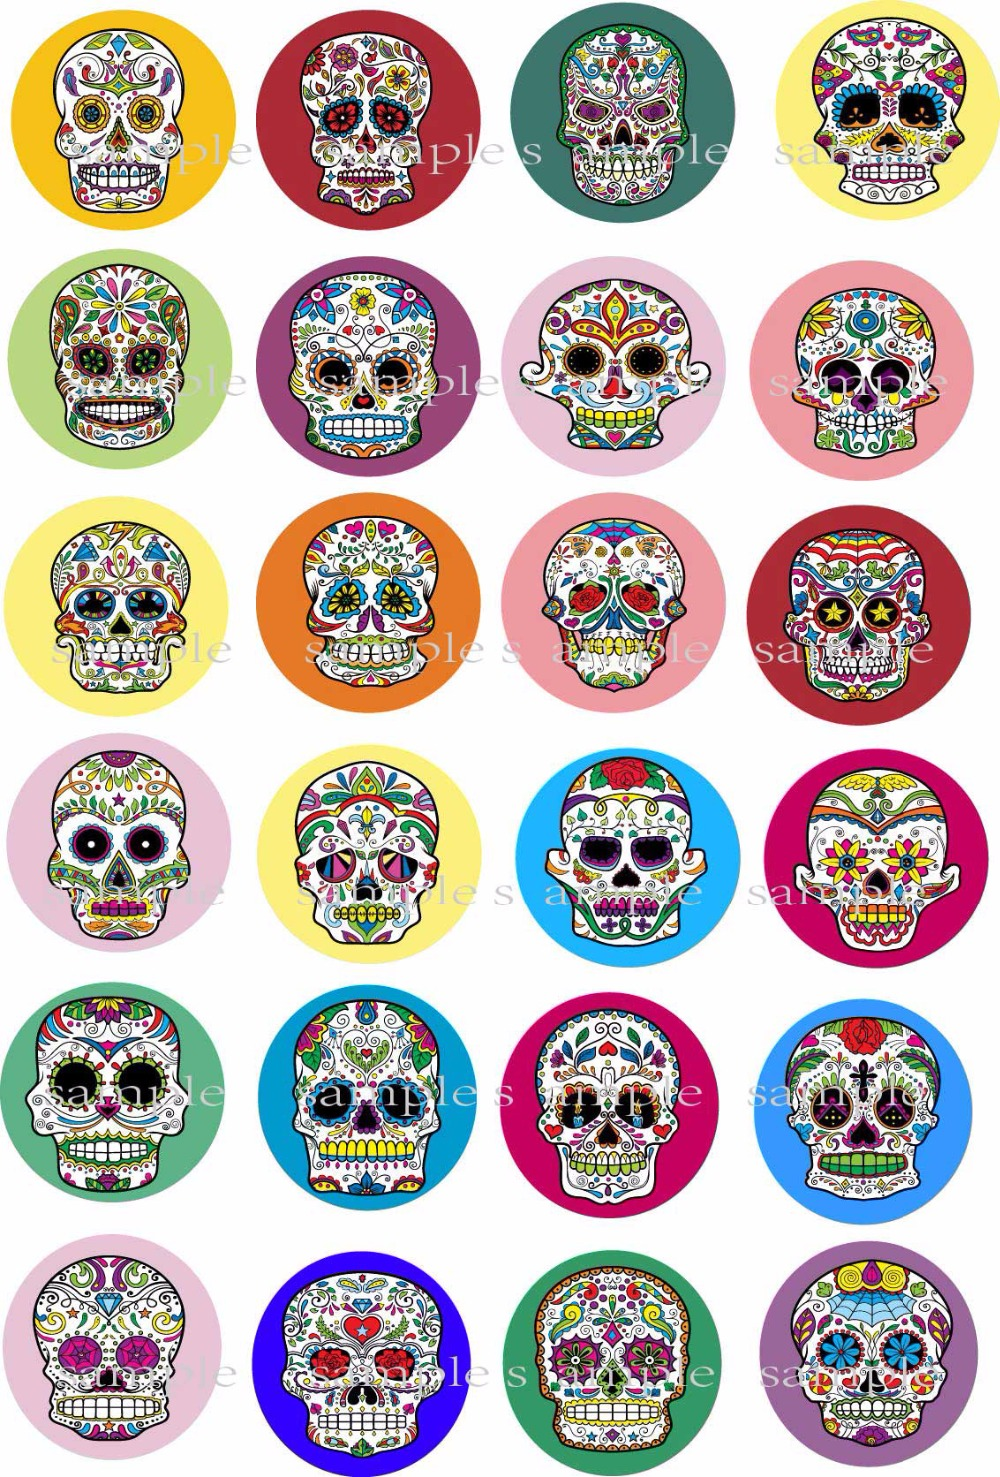 Edible Cake Decorations Skull : Aliexpress.com : Buy 24 Mexican Sugar skull Edible cake ...